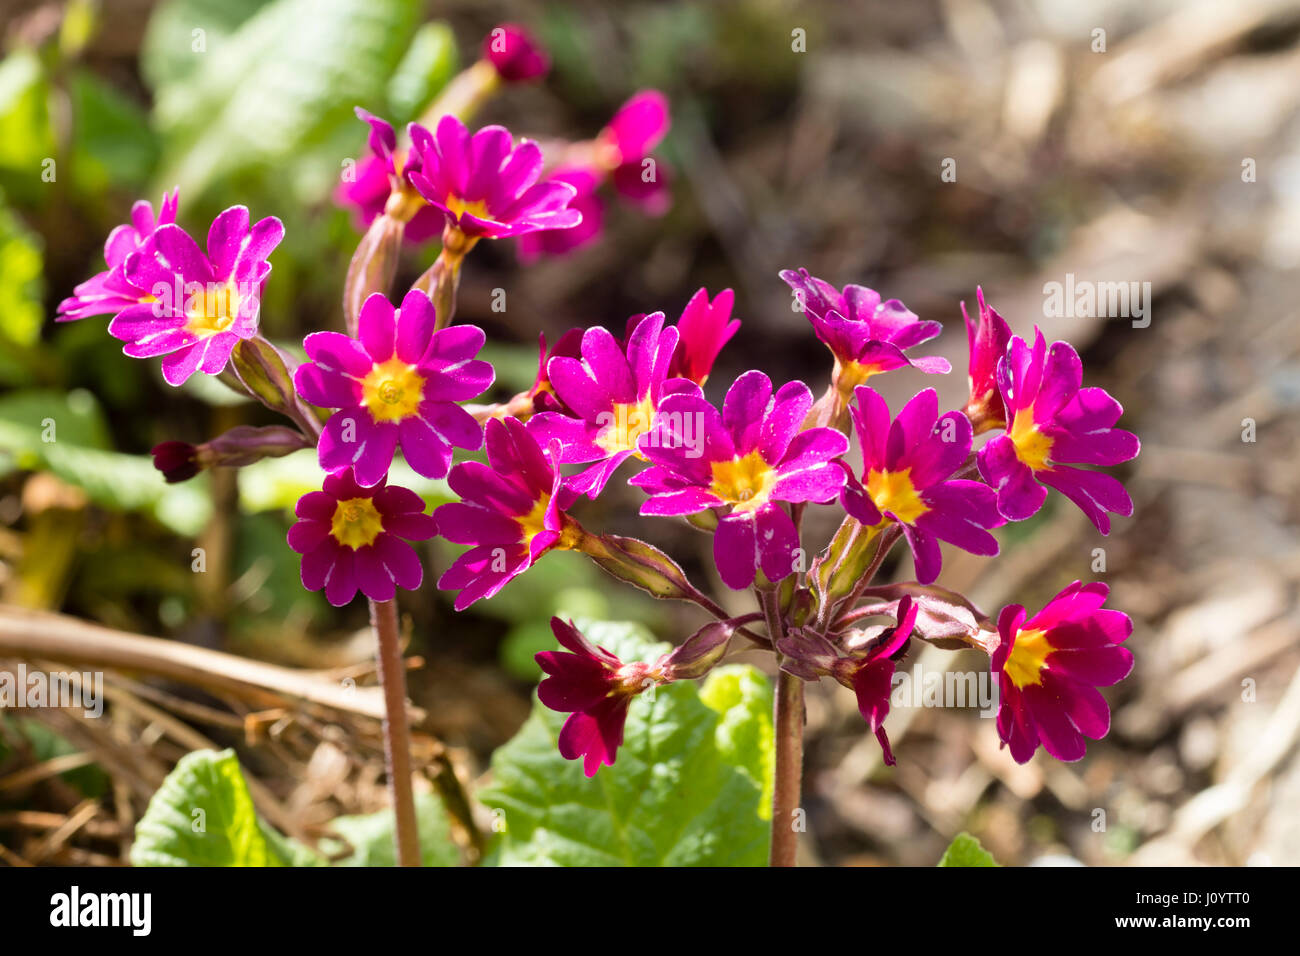 Deep Pink Primrose Flowers In The Polyantha Type Heads Of The